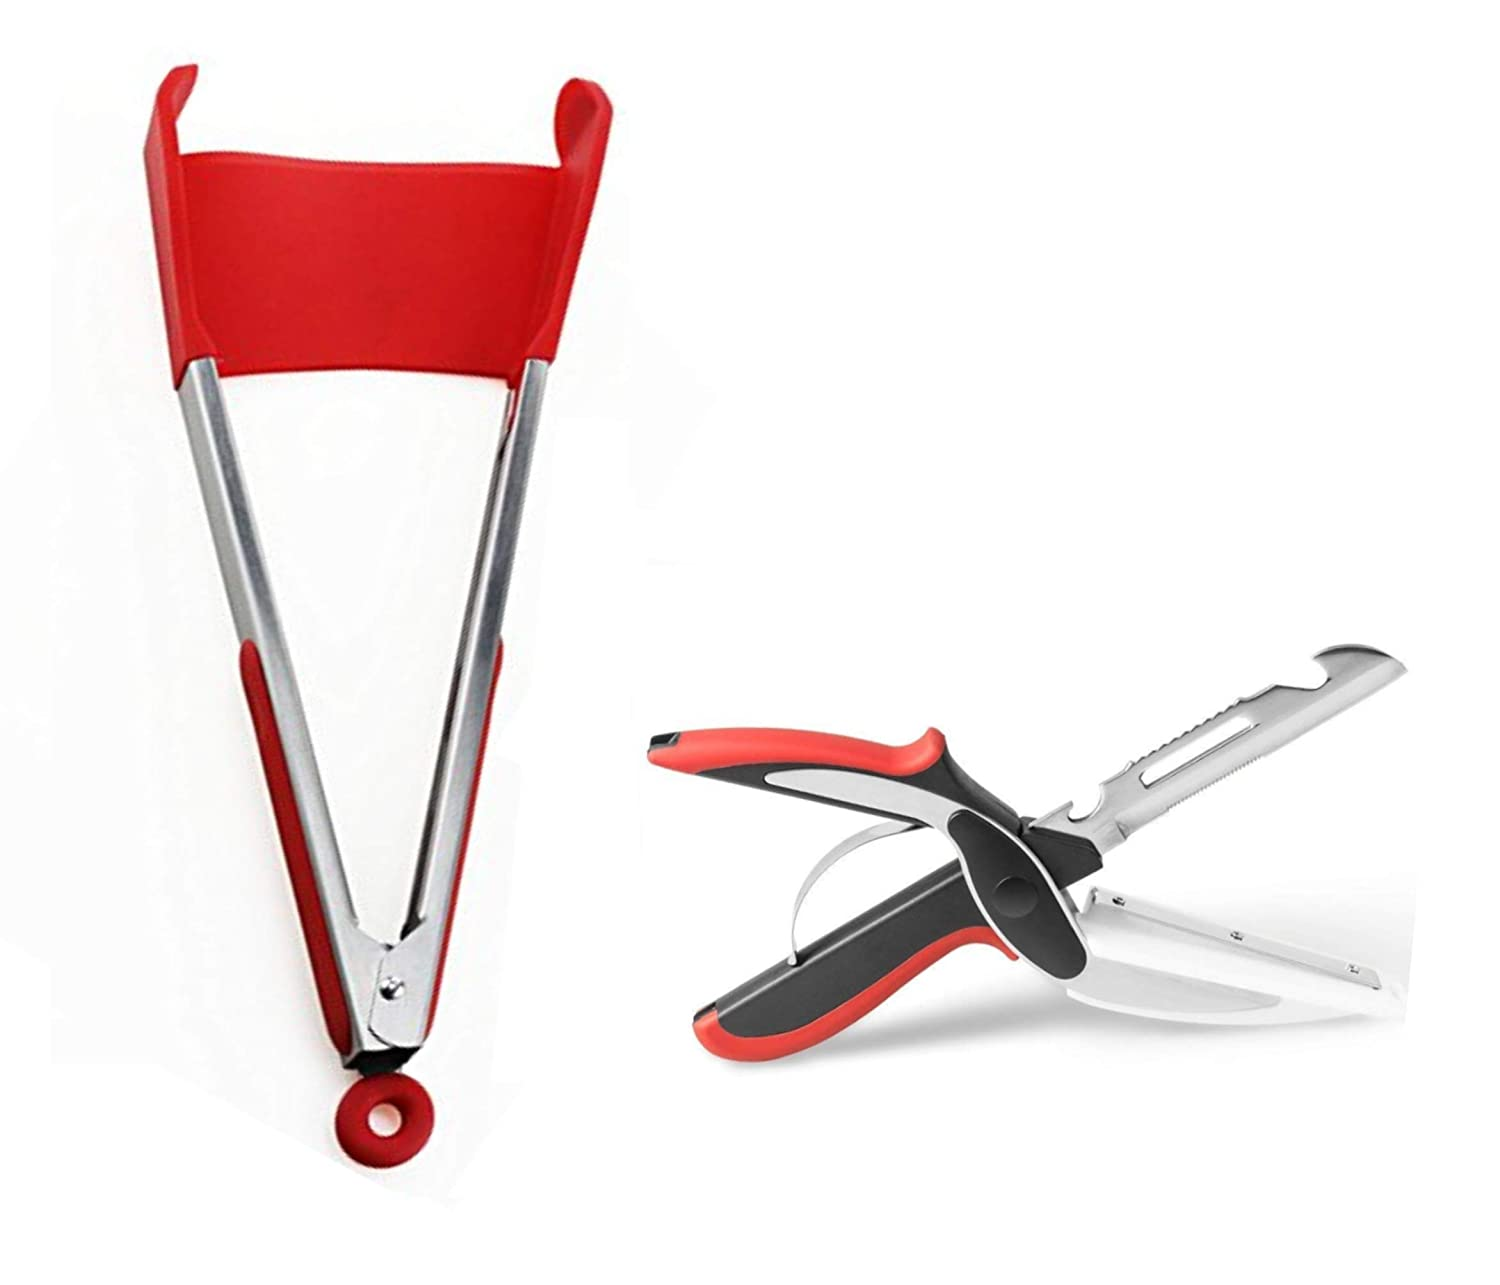 2-in-1 Spatula Tongs (BBQ and Grill